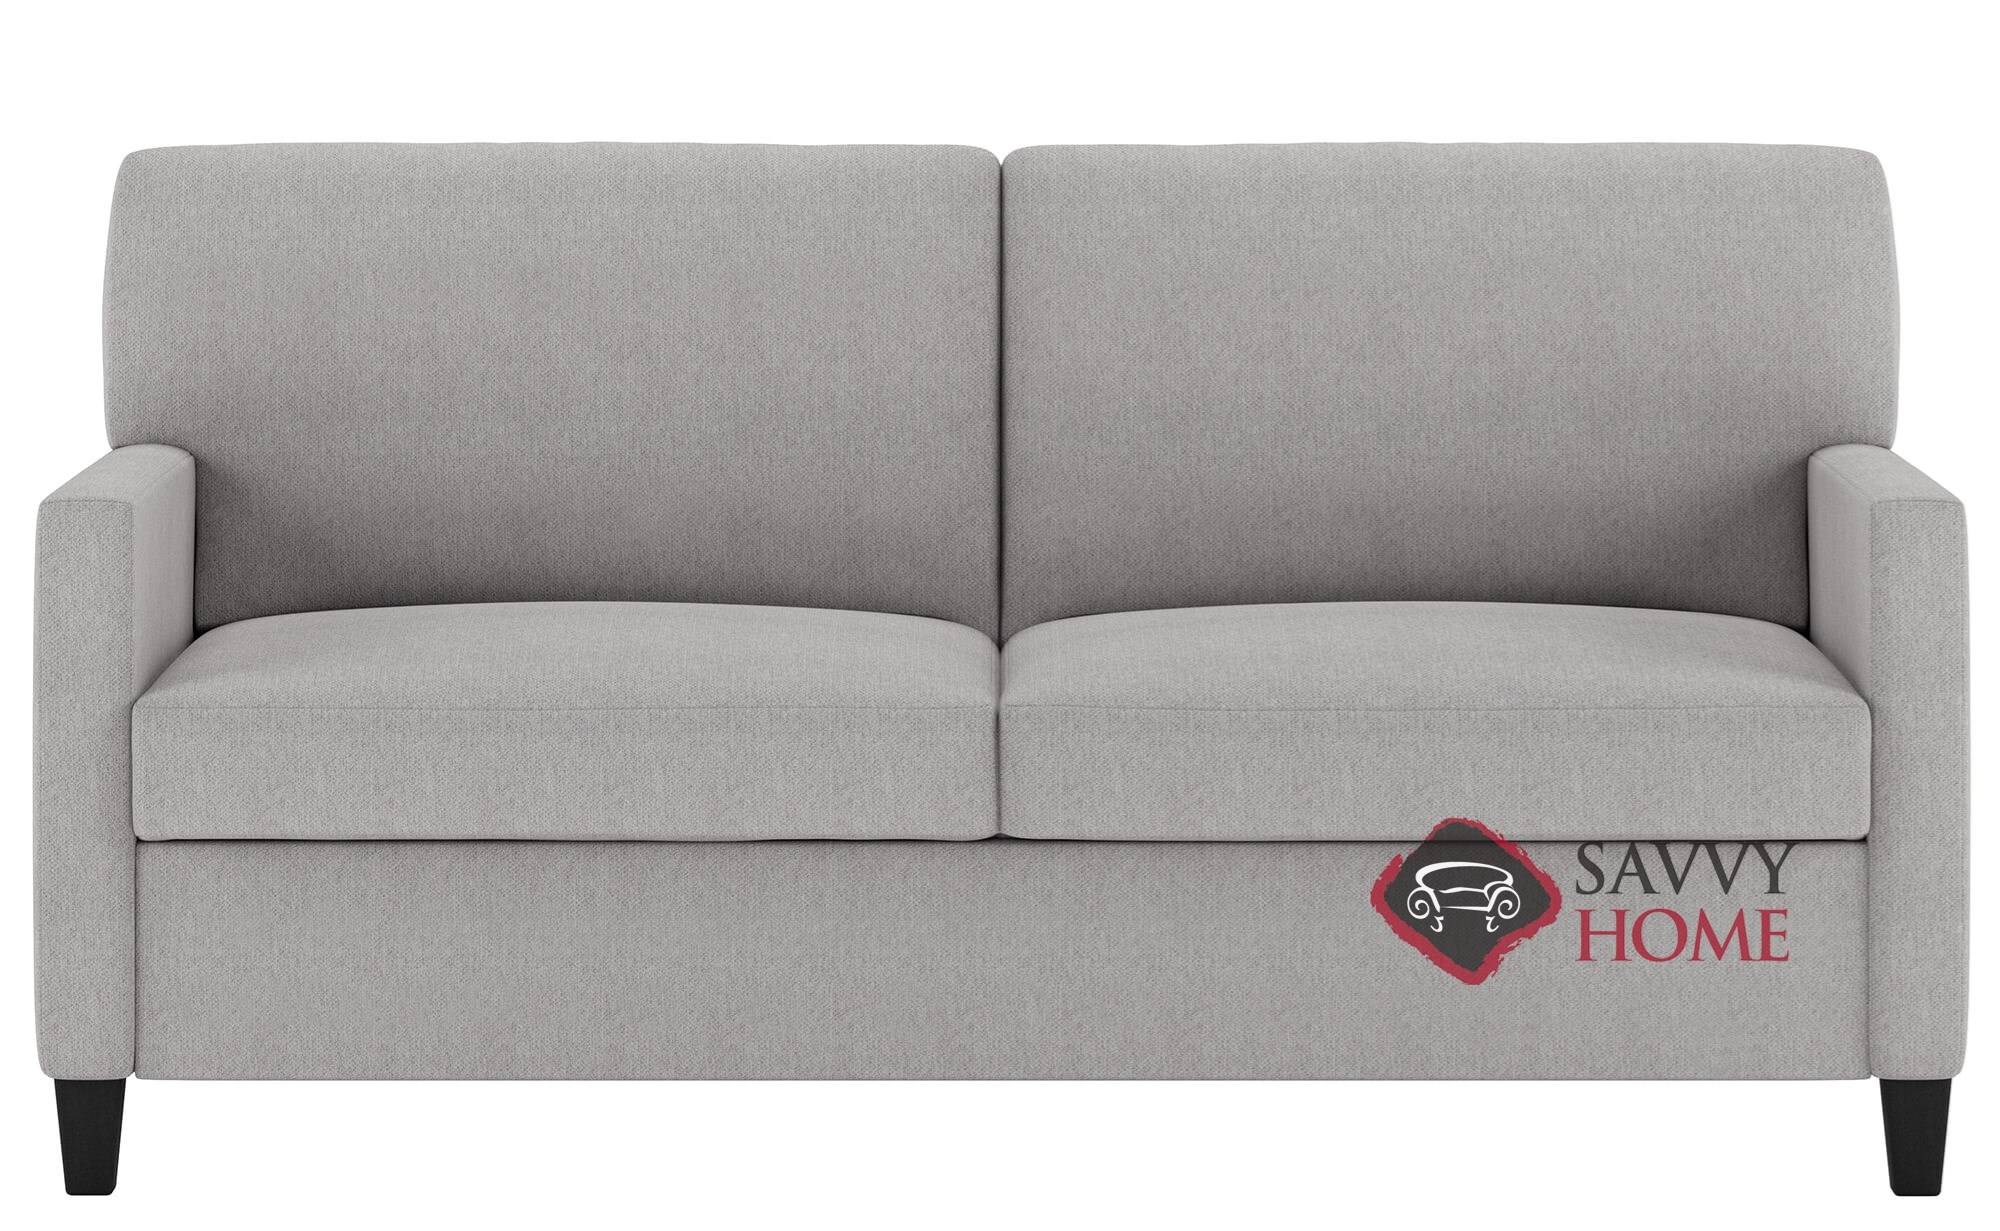 Conley Fabric Sleeper Sofas Queen By